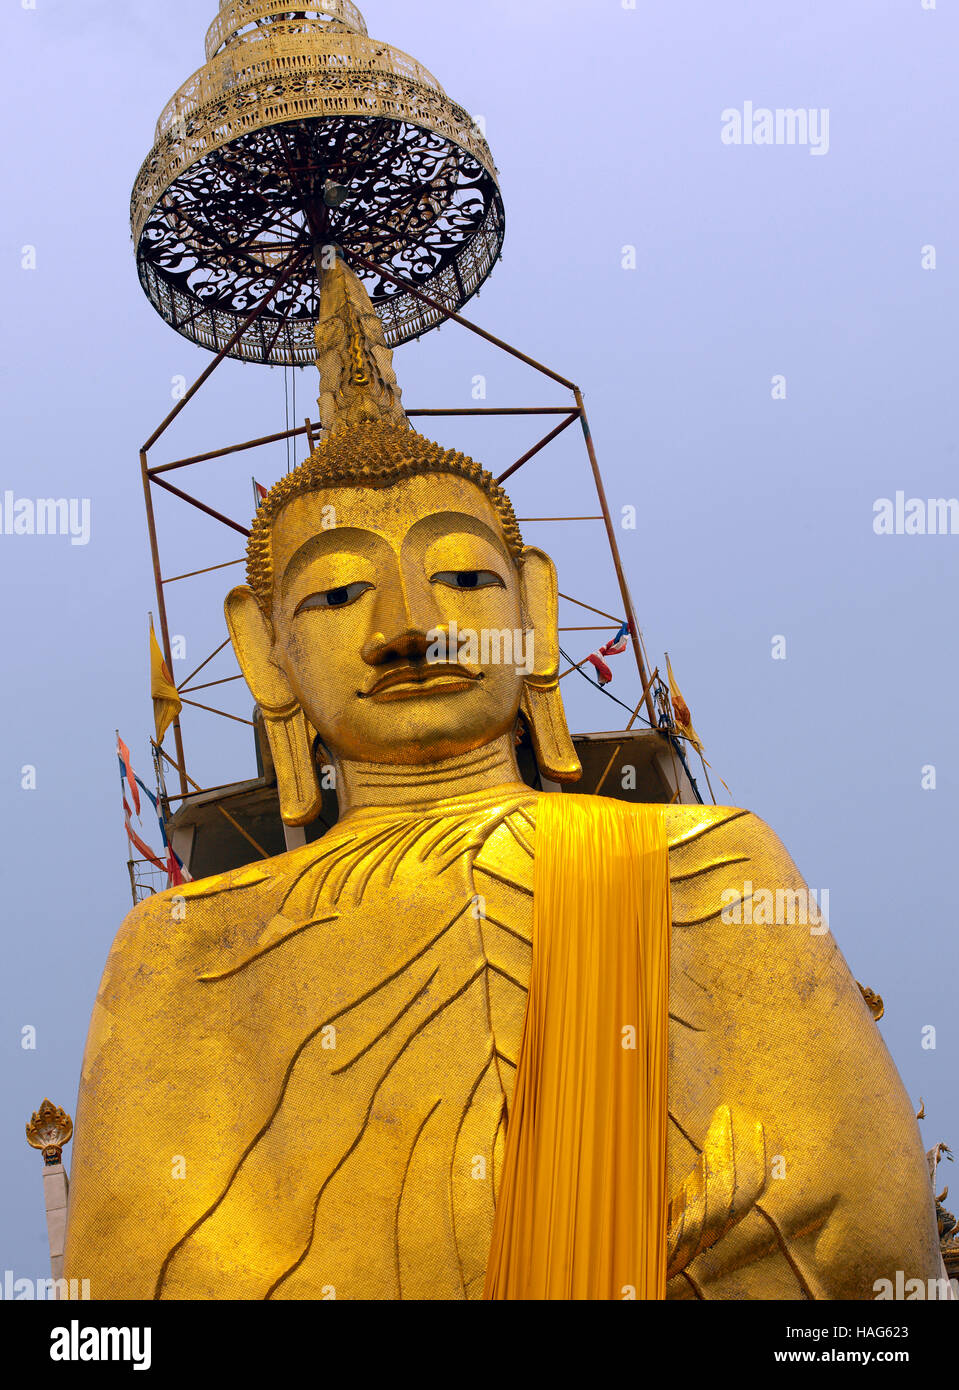 32m high statue of Buddha at Wat Intharawihan in the Nakhon district of Bangkok in Thailand - Stock Image